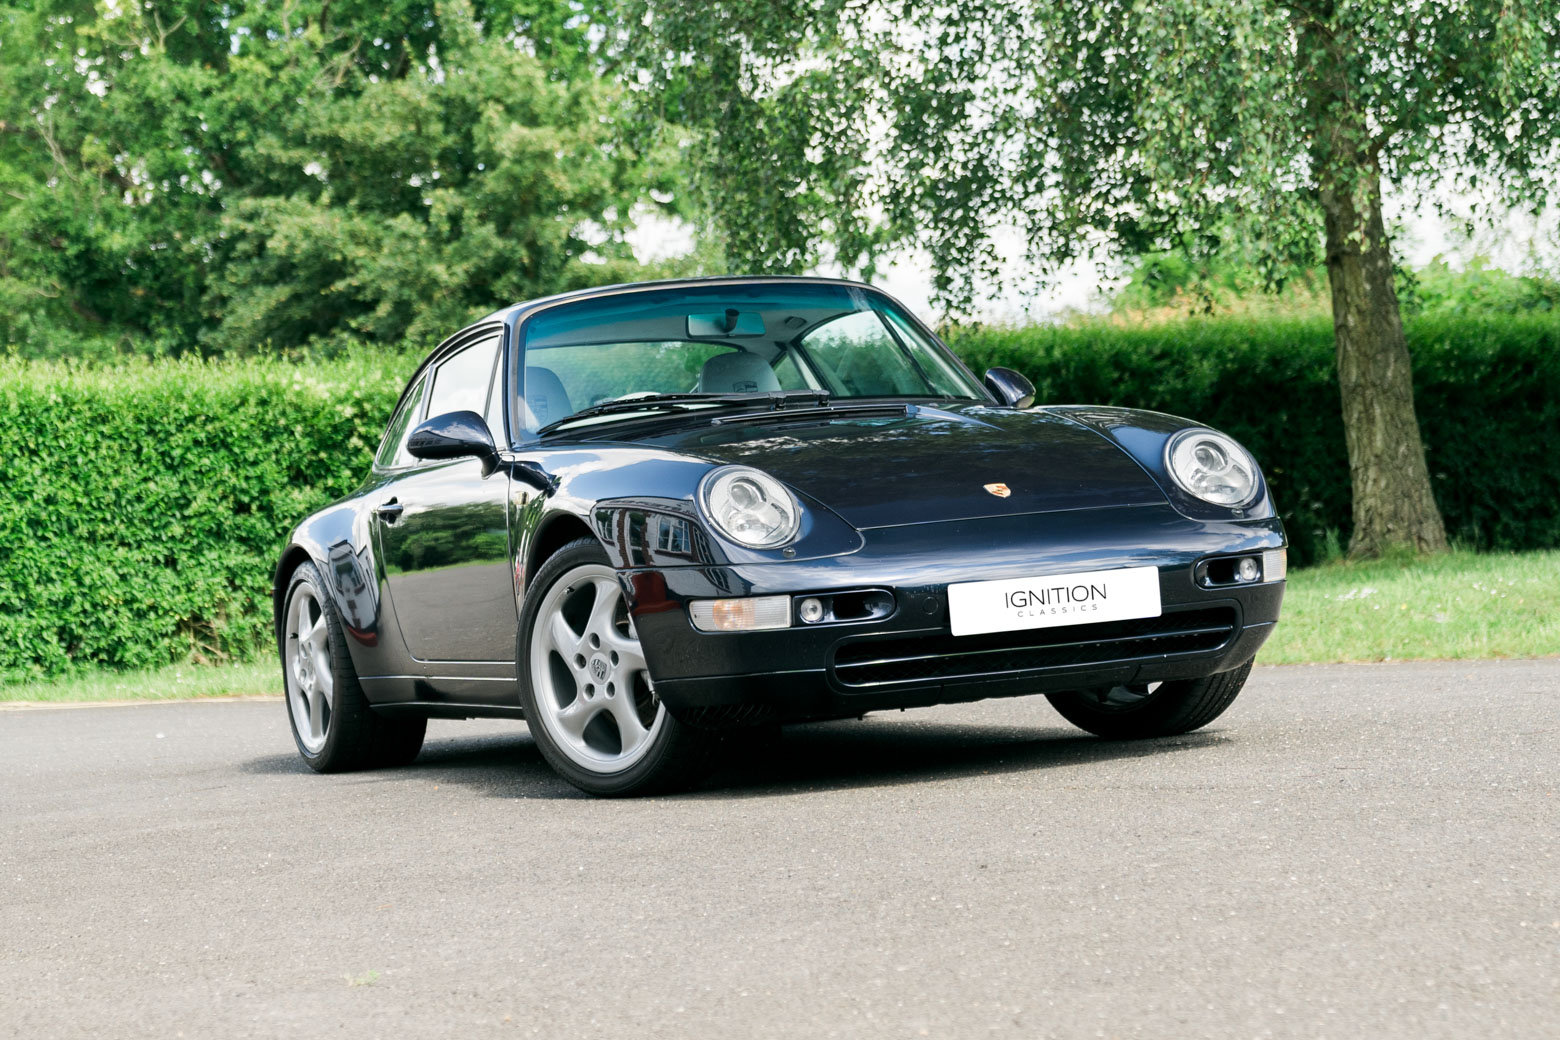 1995 Porsche 993 C4 Manual For Sale (picture 1 of 6)